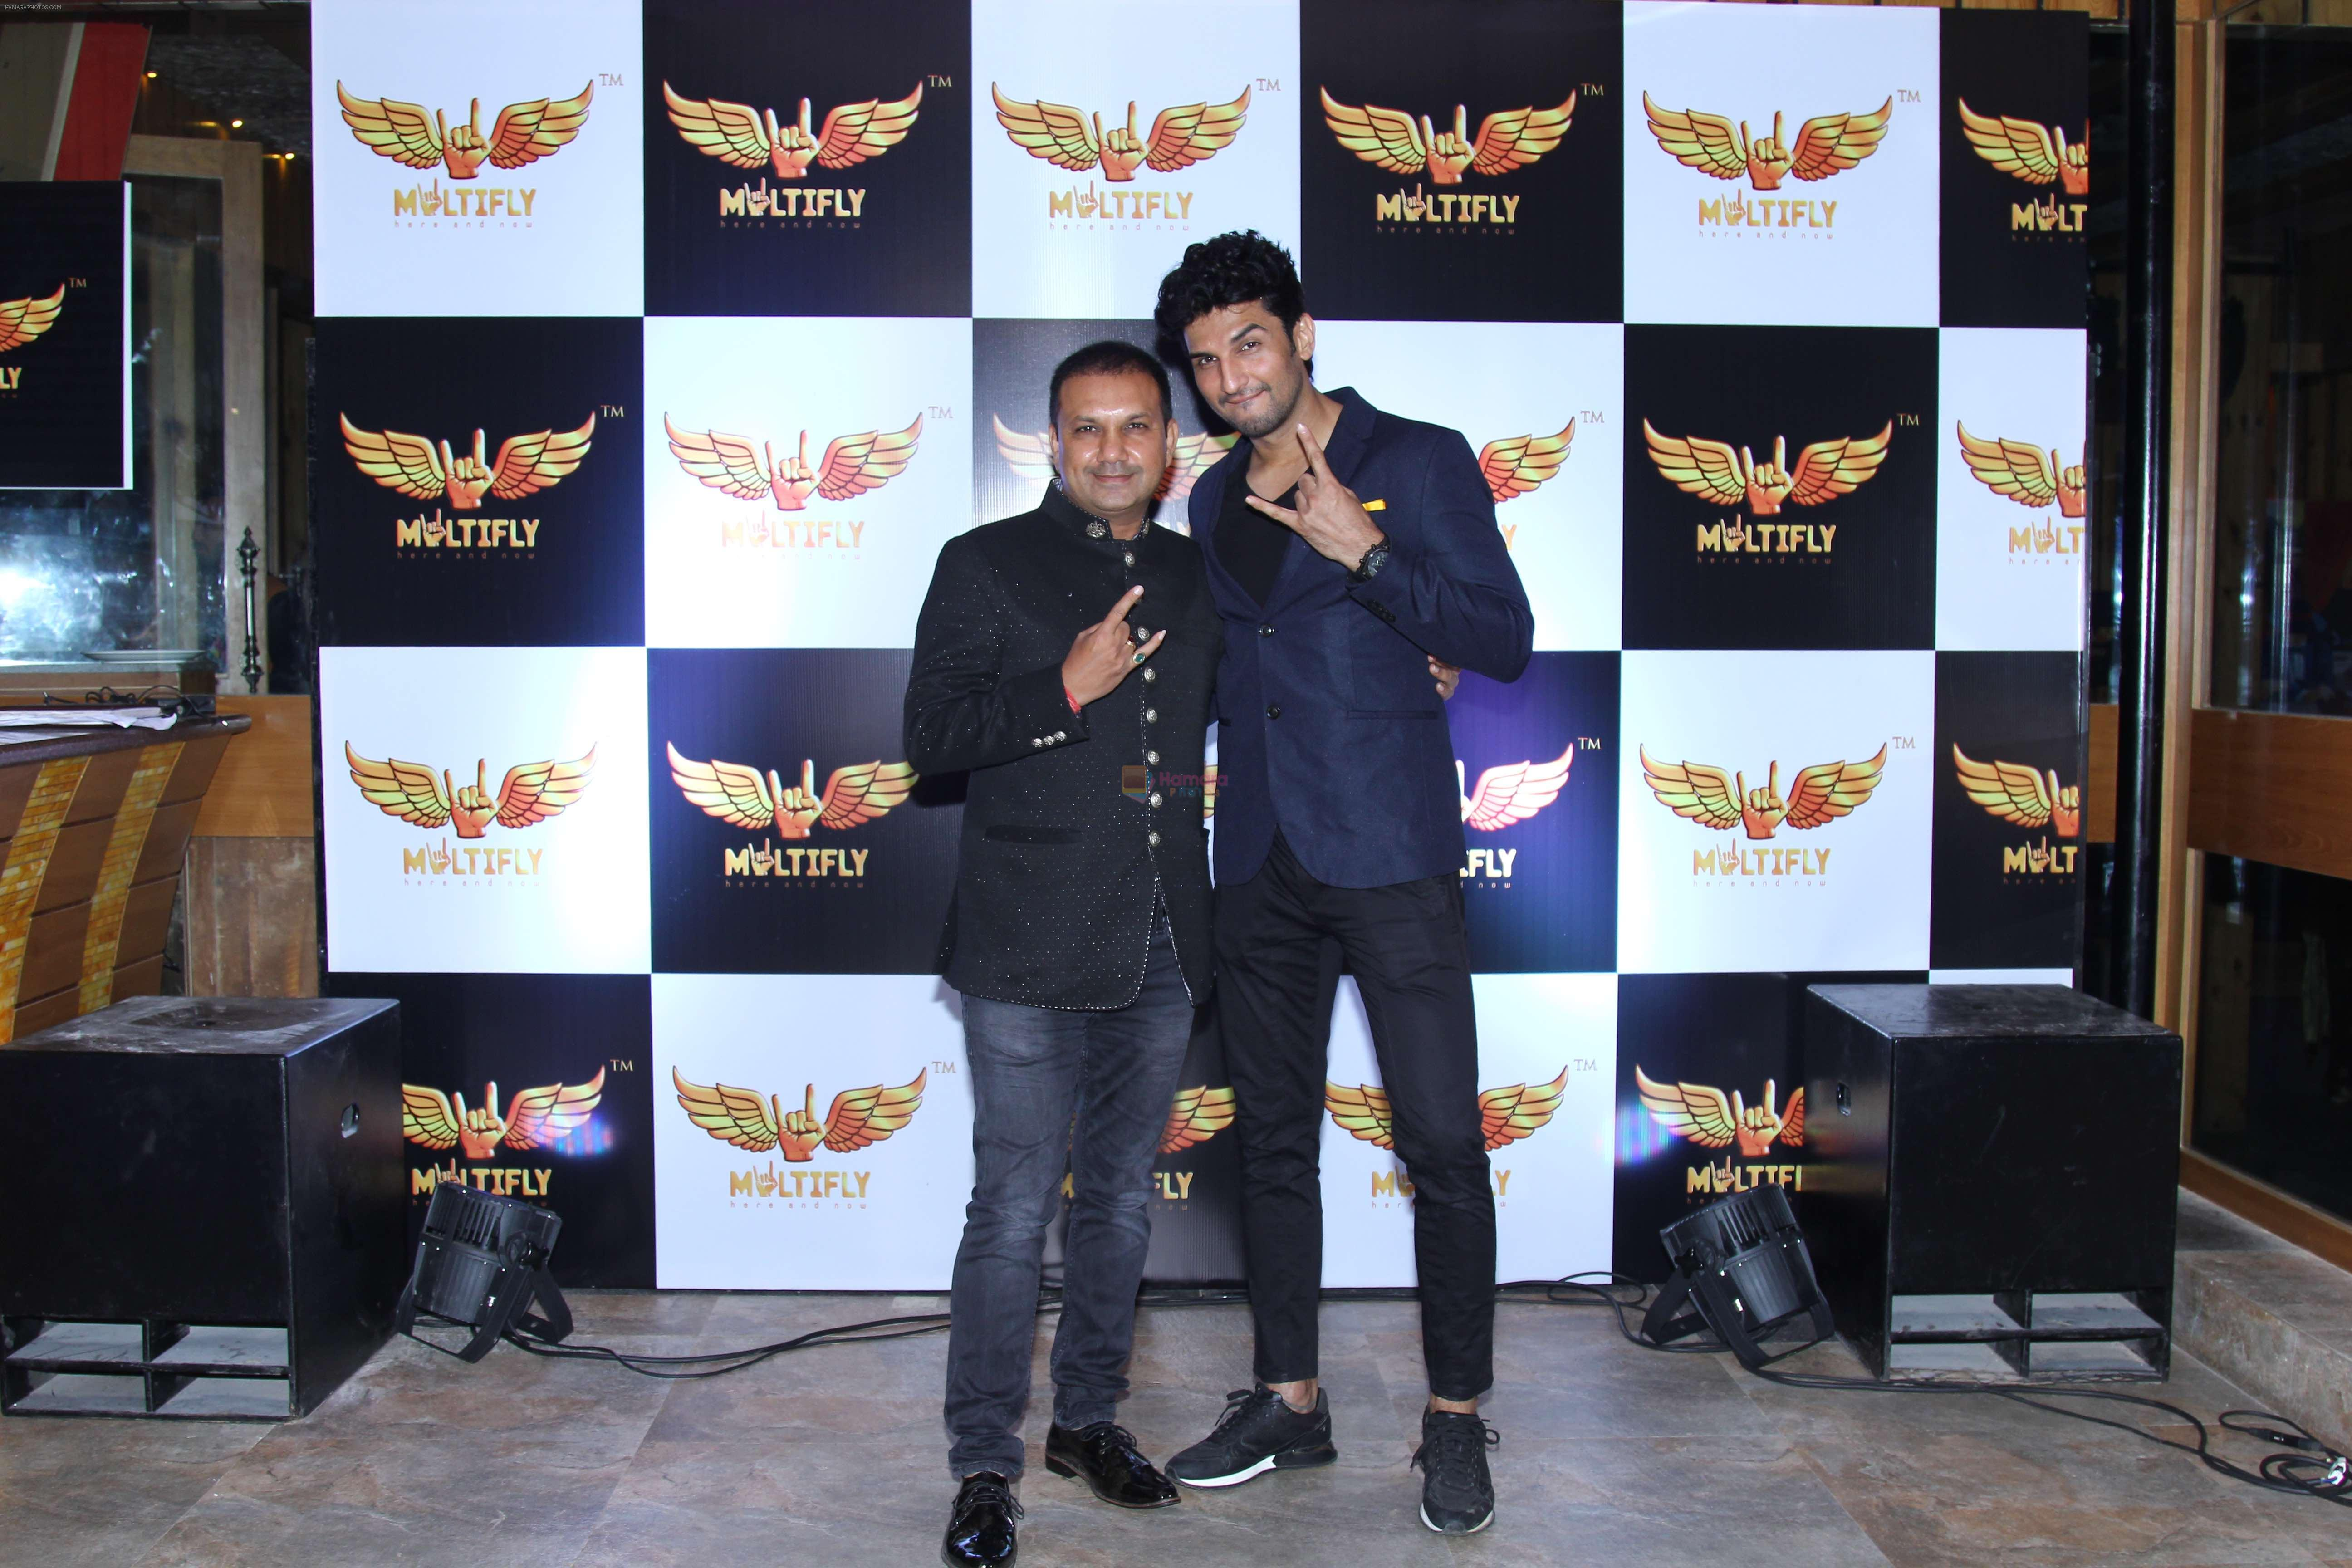 Manish Raisighan and Udayan Shah announce his latest project - Multify on 12th Oct 2016